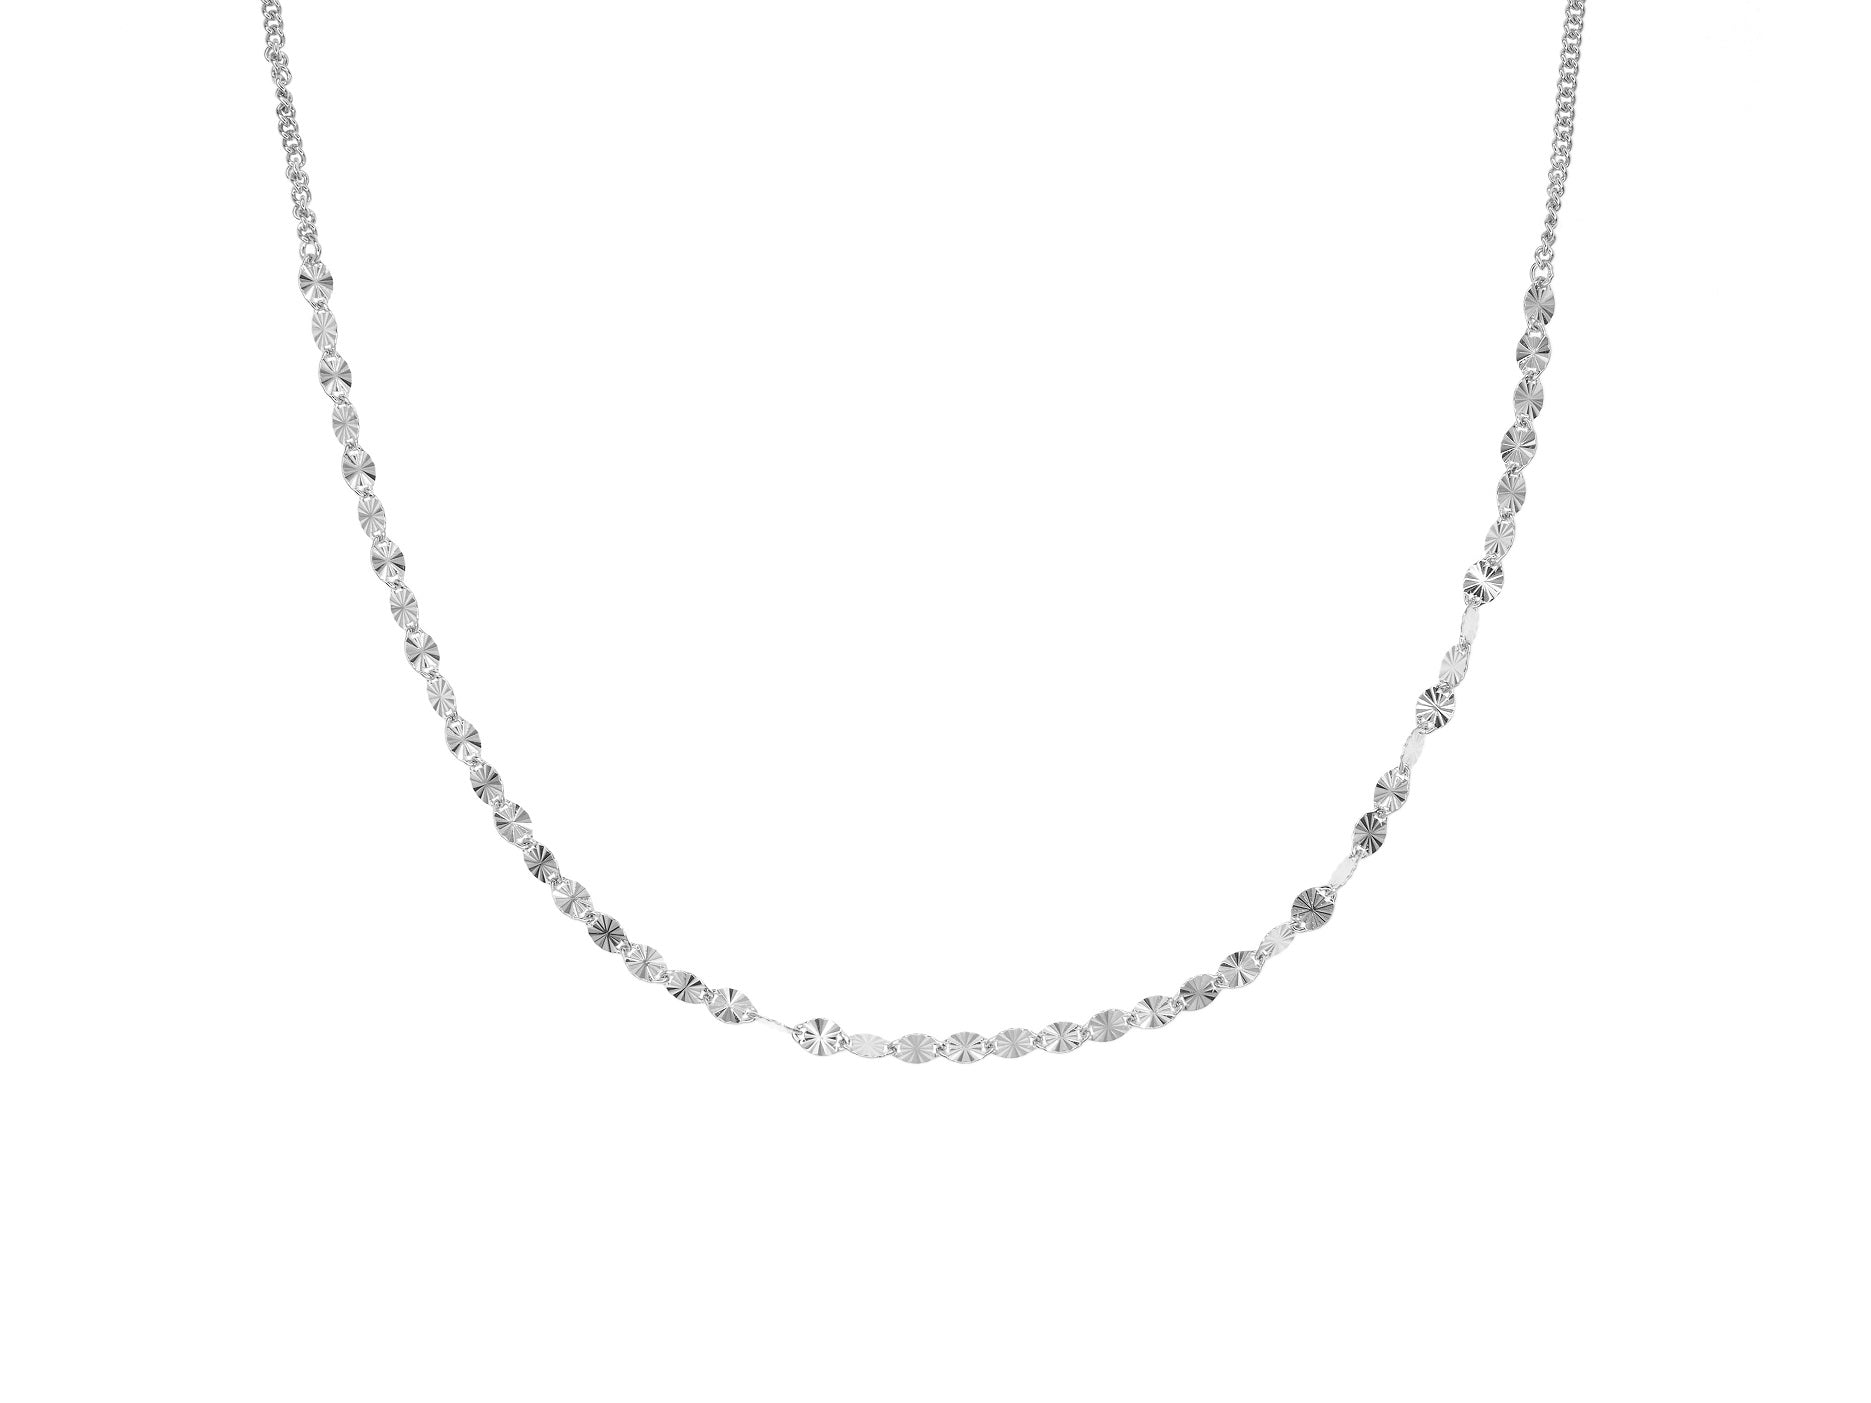 Juliet choker, sterling silver, rhodium plated